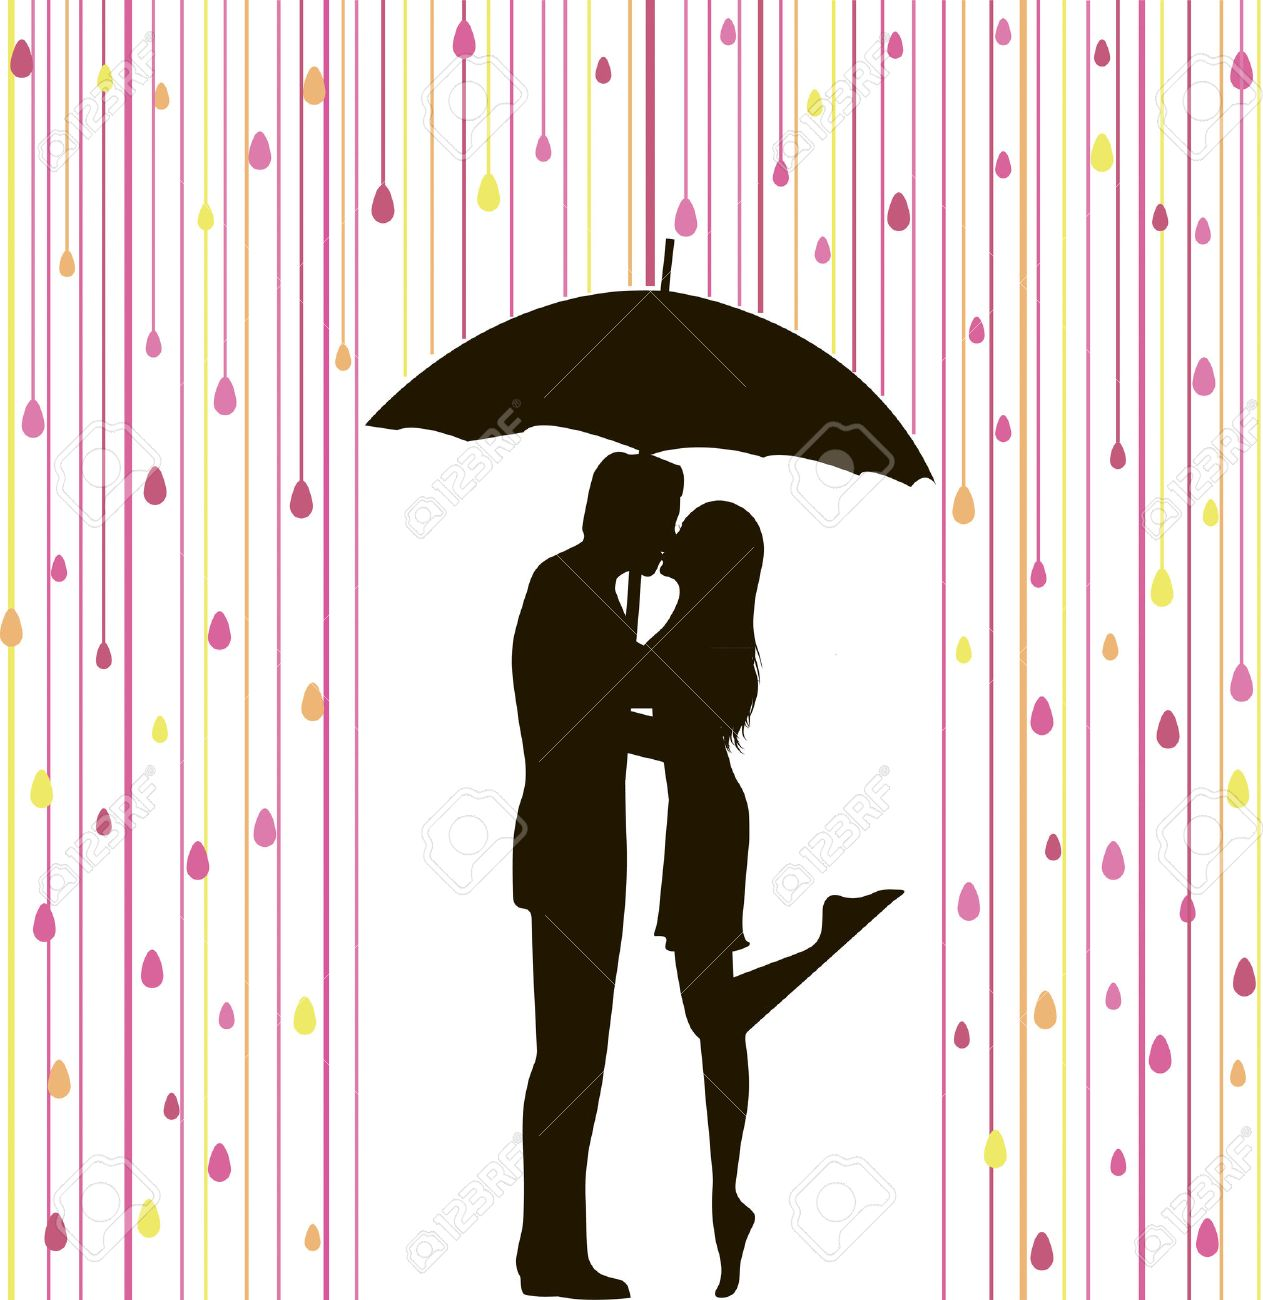 abstract vector illustration of couple silhouette under colorful rain Stock Vector - 23124062